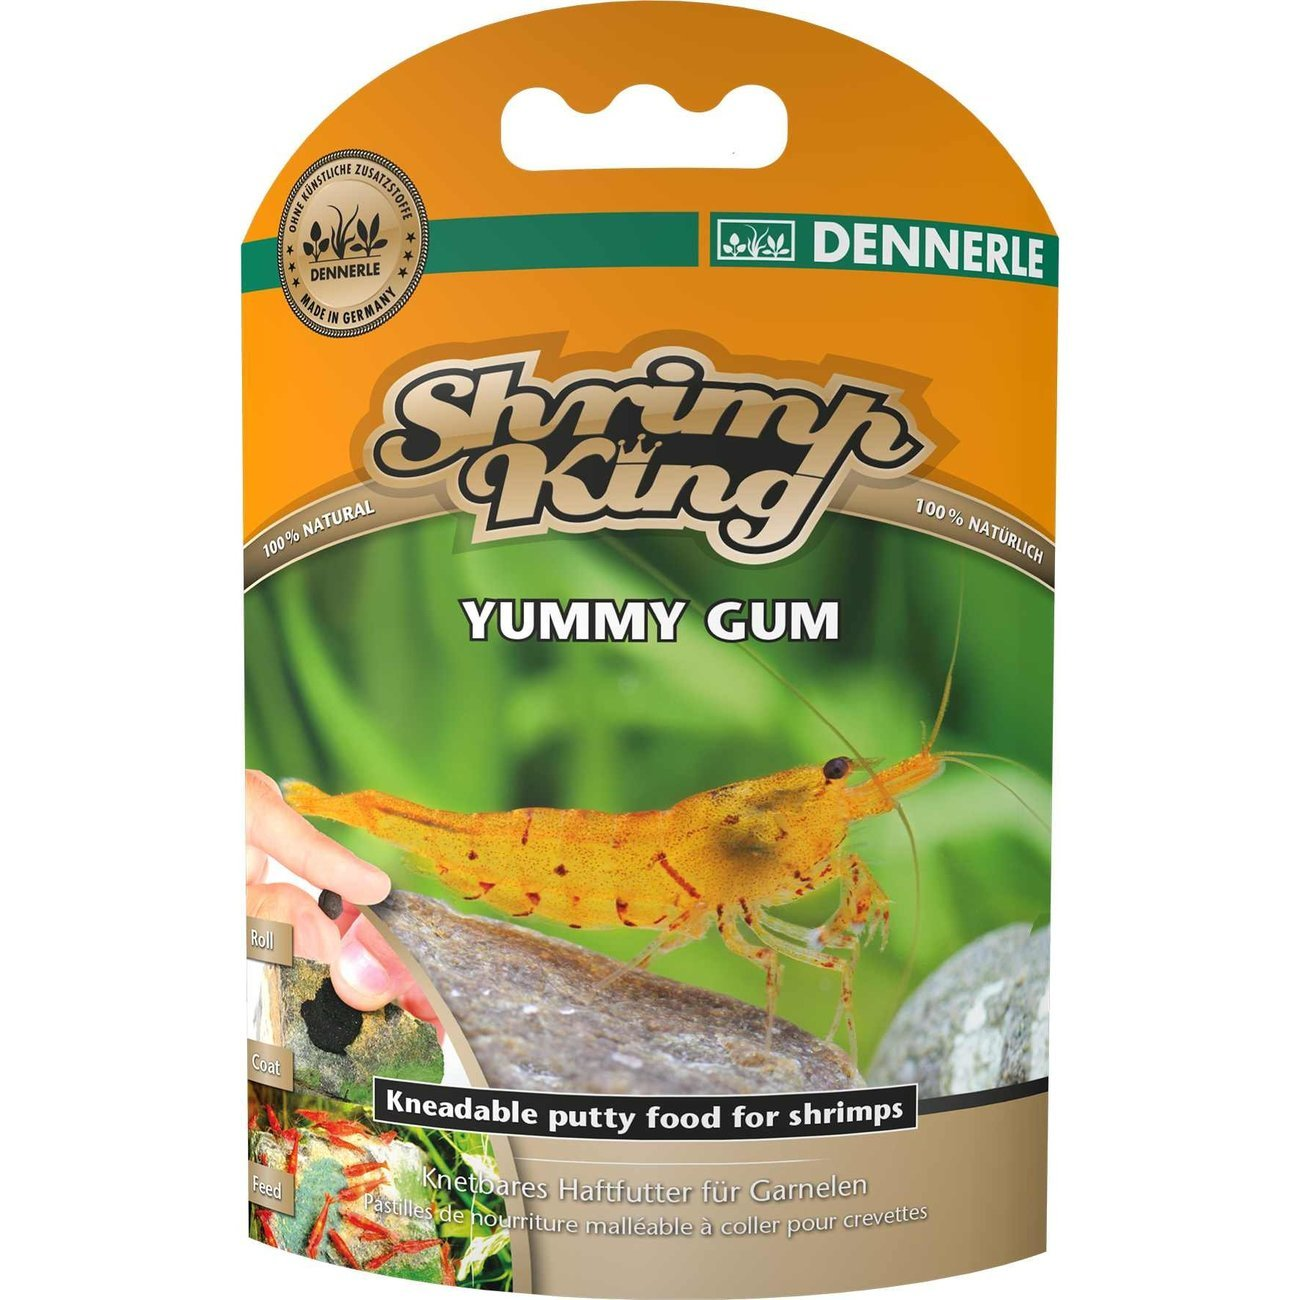 Dennerle Shrimp King Yummy Gum Preview Image